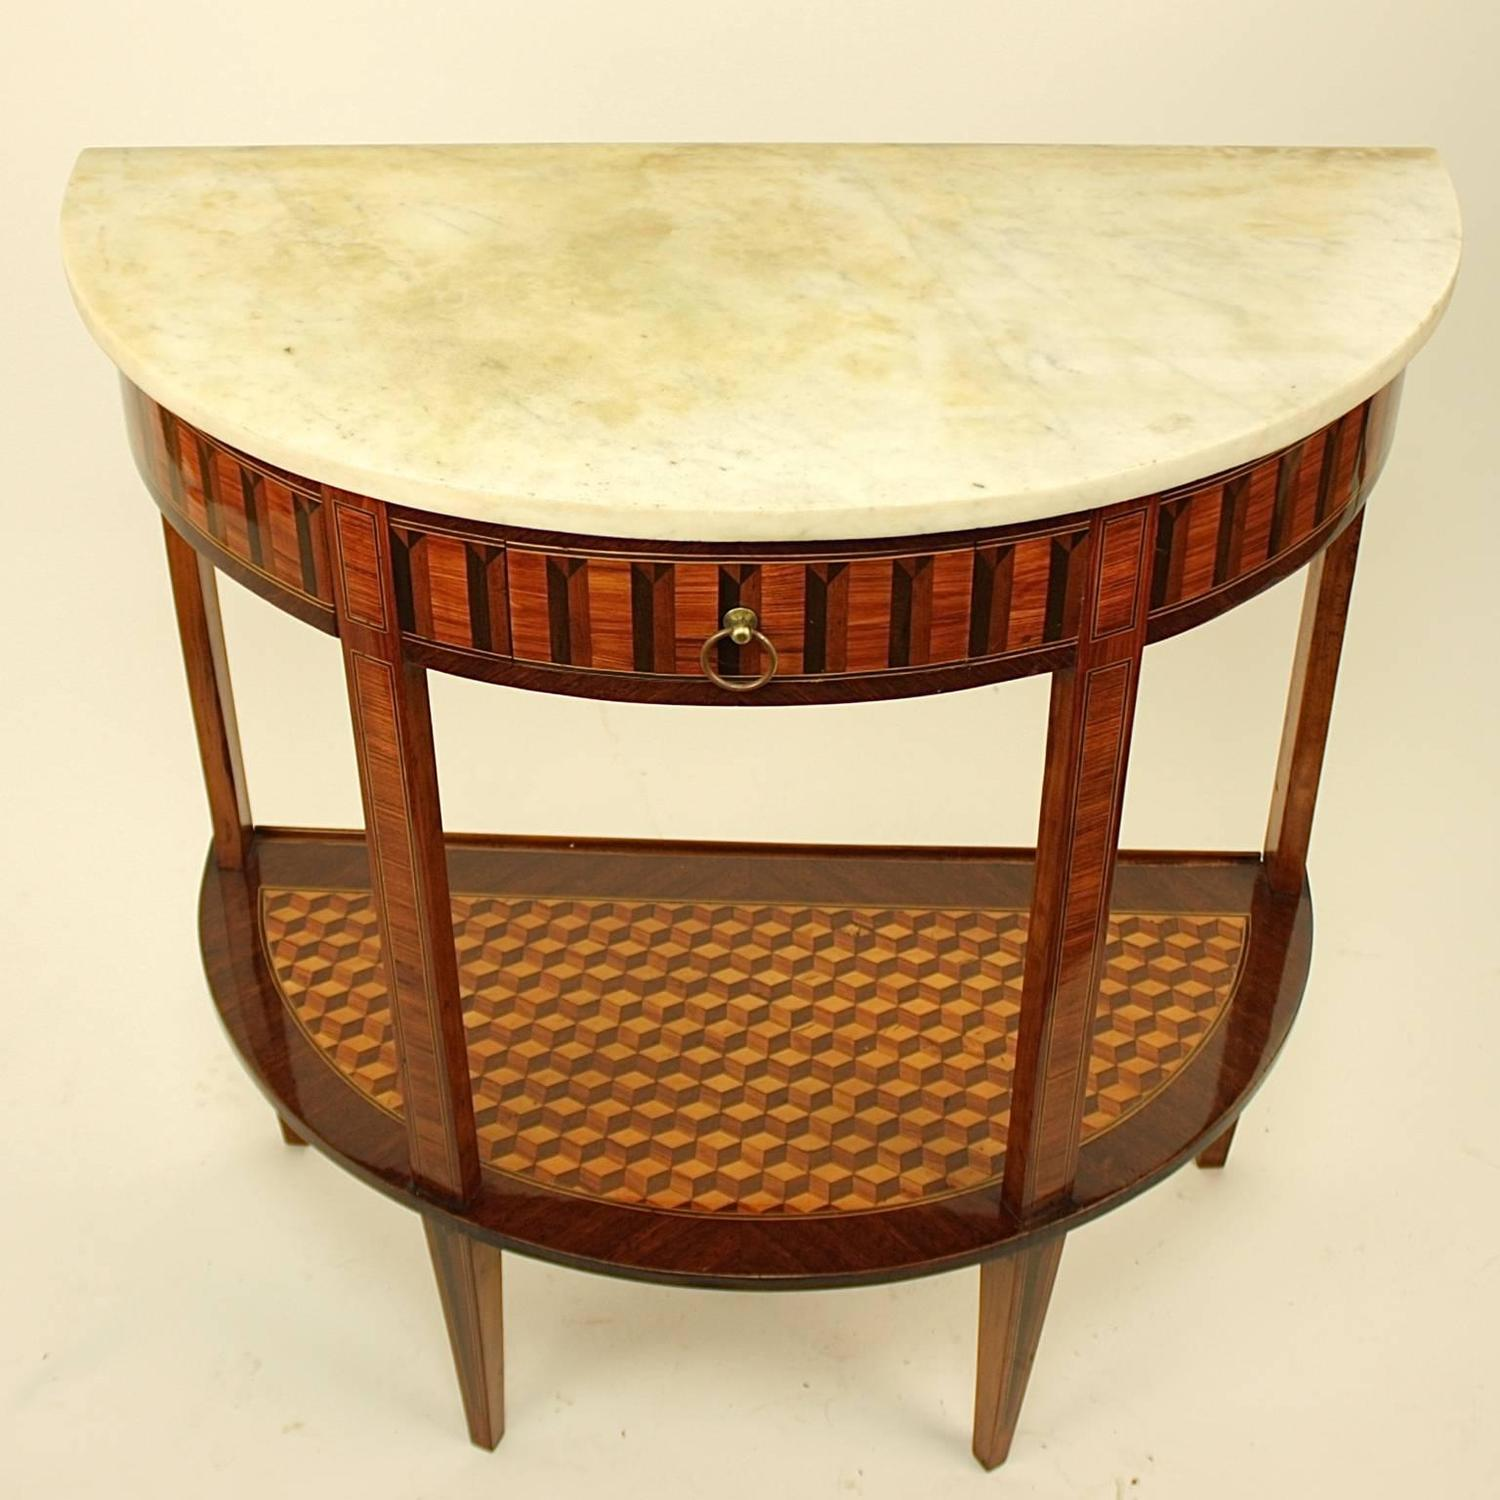 19th century marquetry inlaid demilune console table at 1stdibs - White demilune console table ...